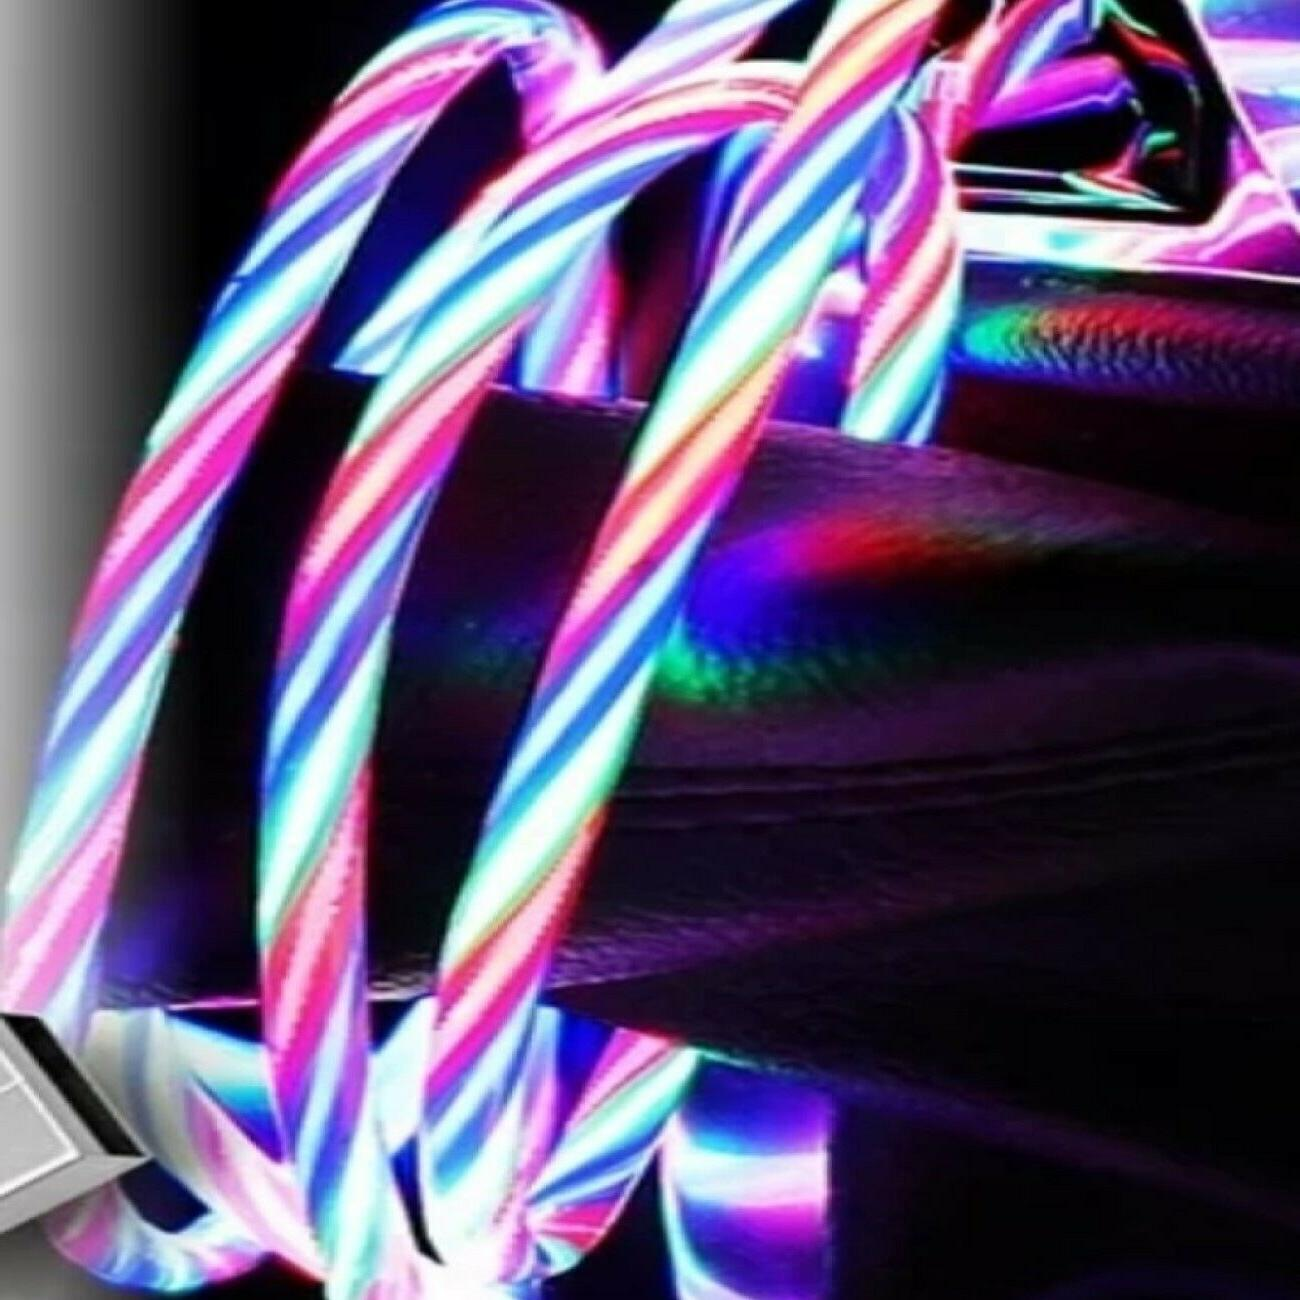 LED Charging Cable USB Cord for Android